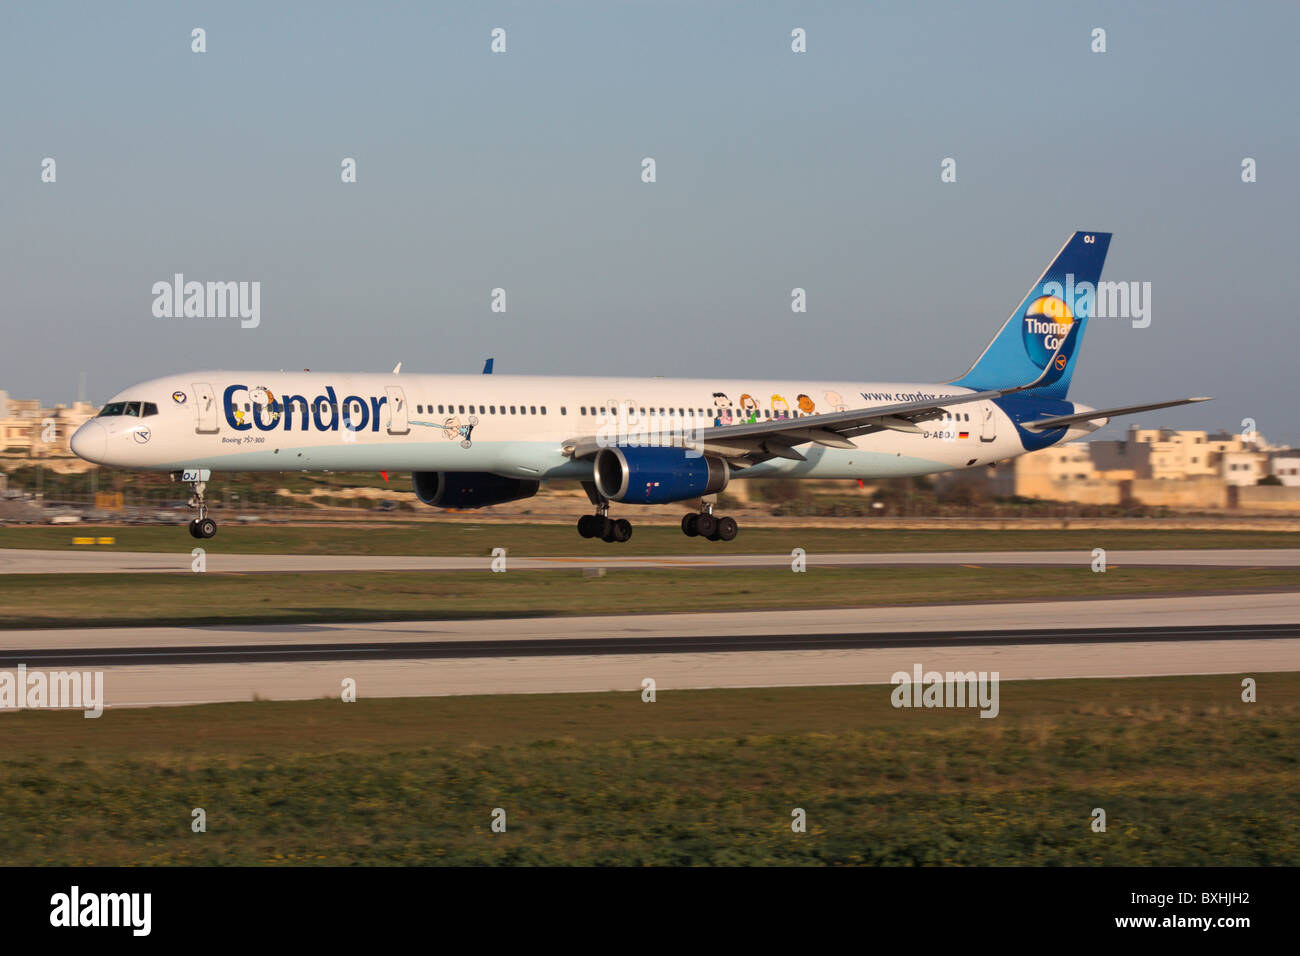 Condor Flugdienst Boeing 757-300 airliner in flight, making a low pass over the runway - Stock Image